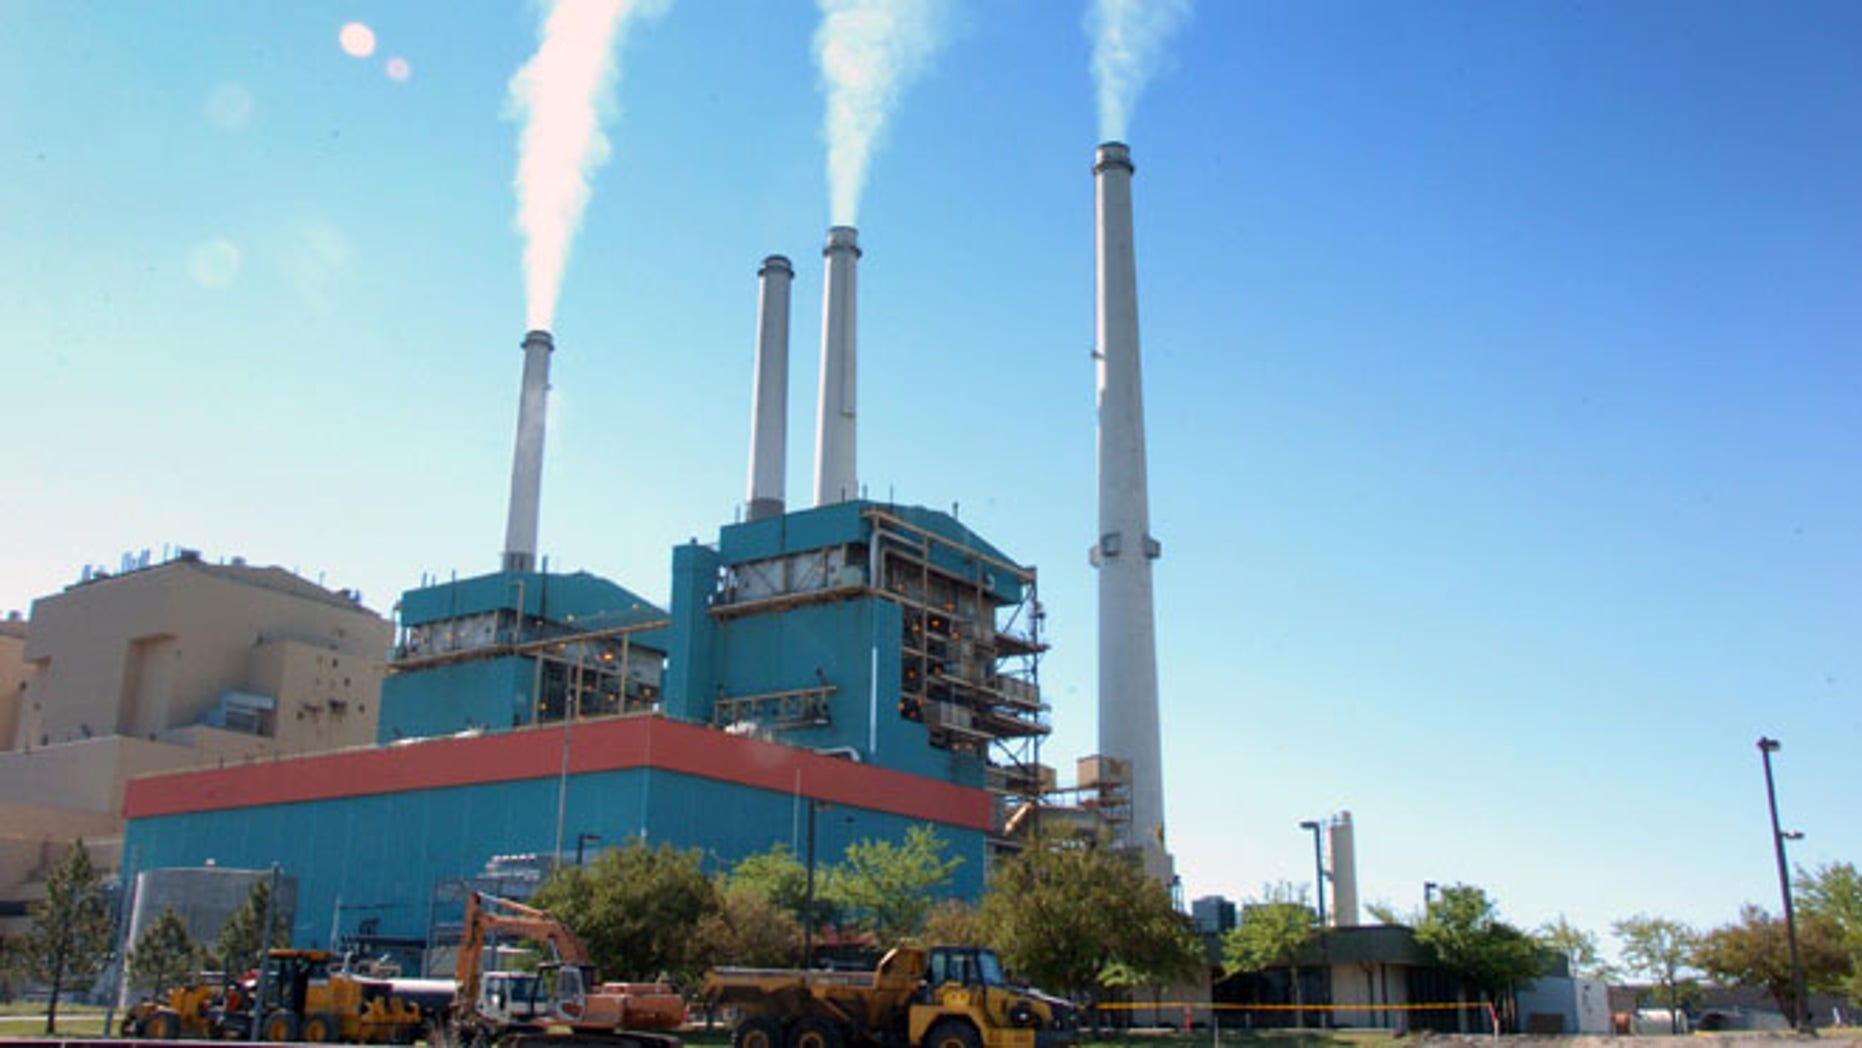 July 1, 2013 file photo shows smoke rises from the Colstrip Steam Electric Station, a coal burning power plant in Colstrip, Mont.